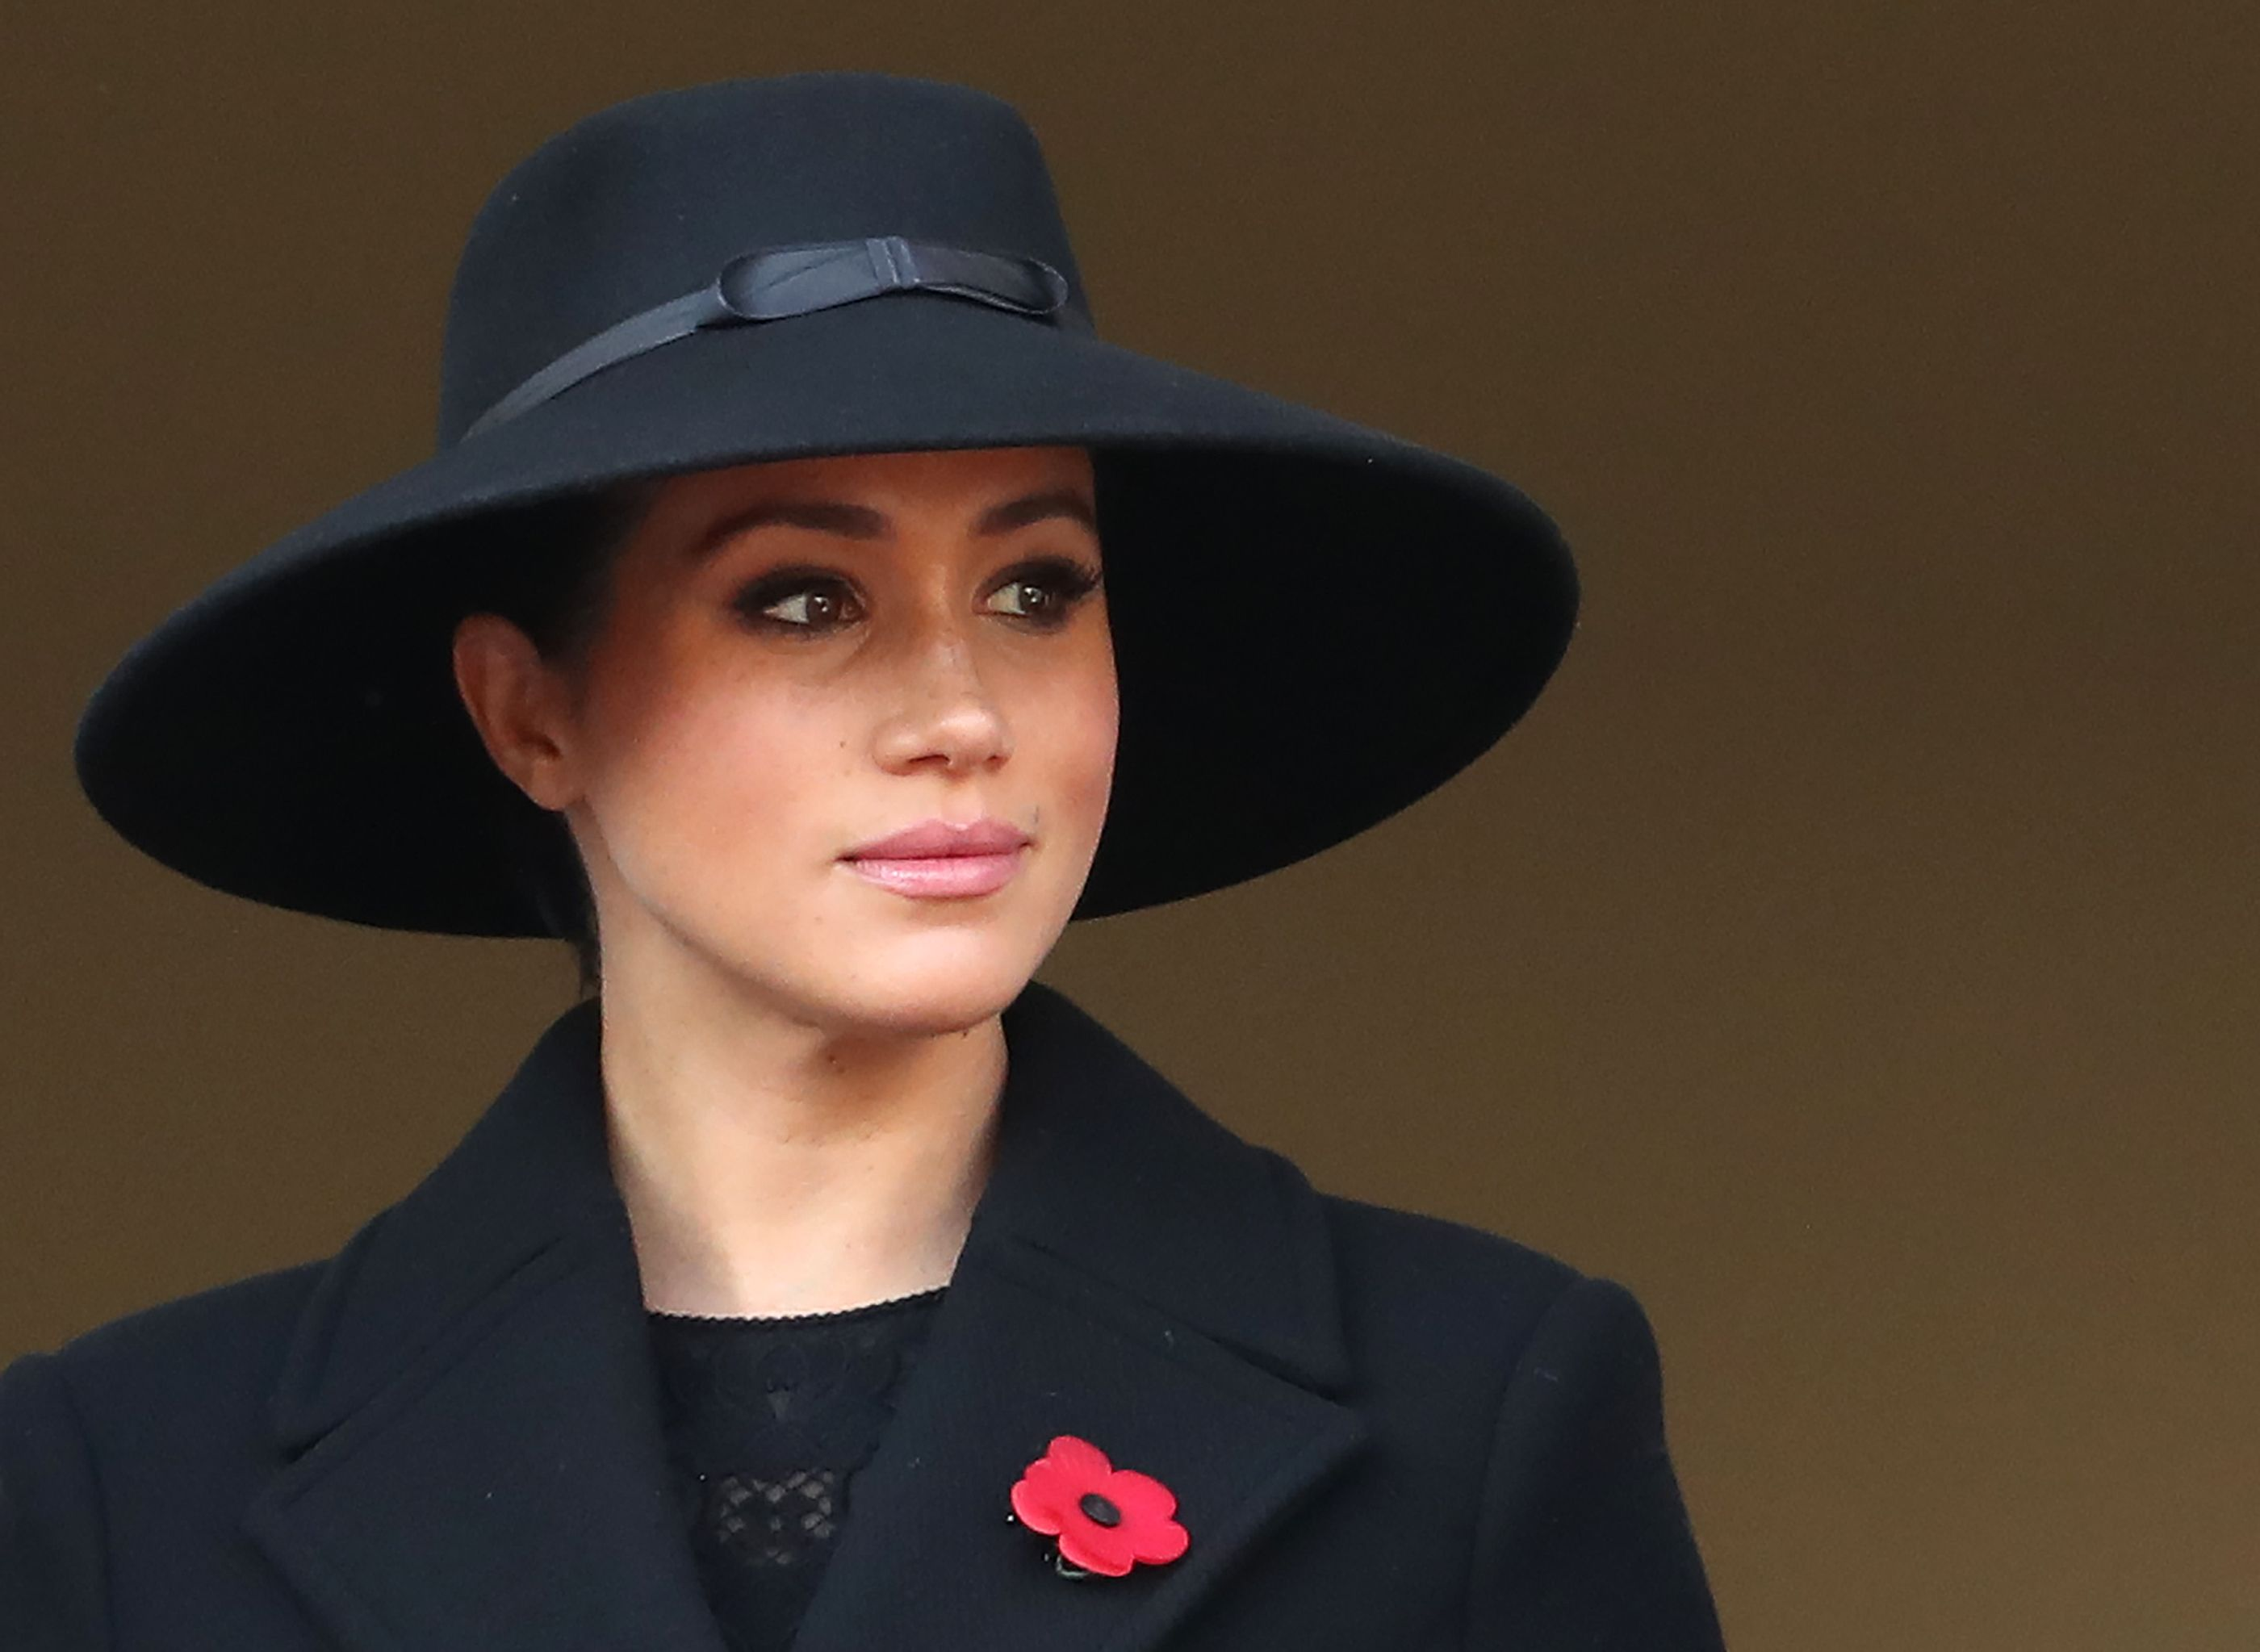 Meghan Markle Was Placed Far Away from Kate Middleton at the Remembrance Day Ceremony This Morning